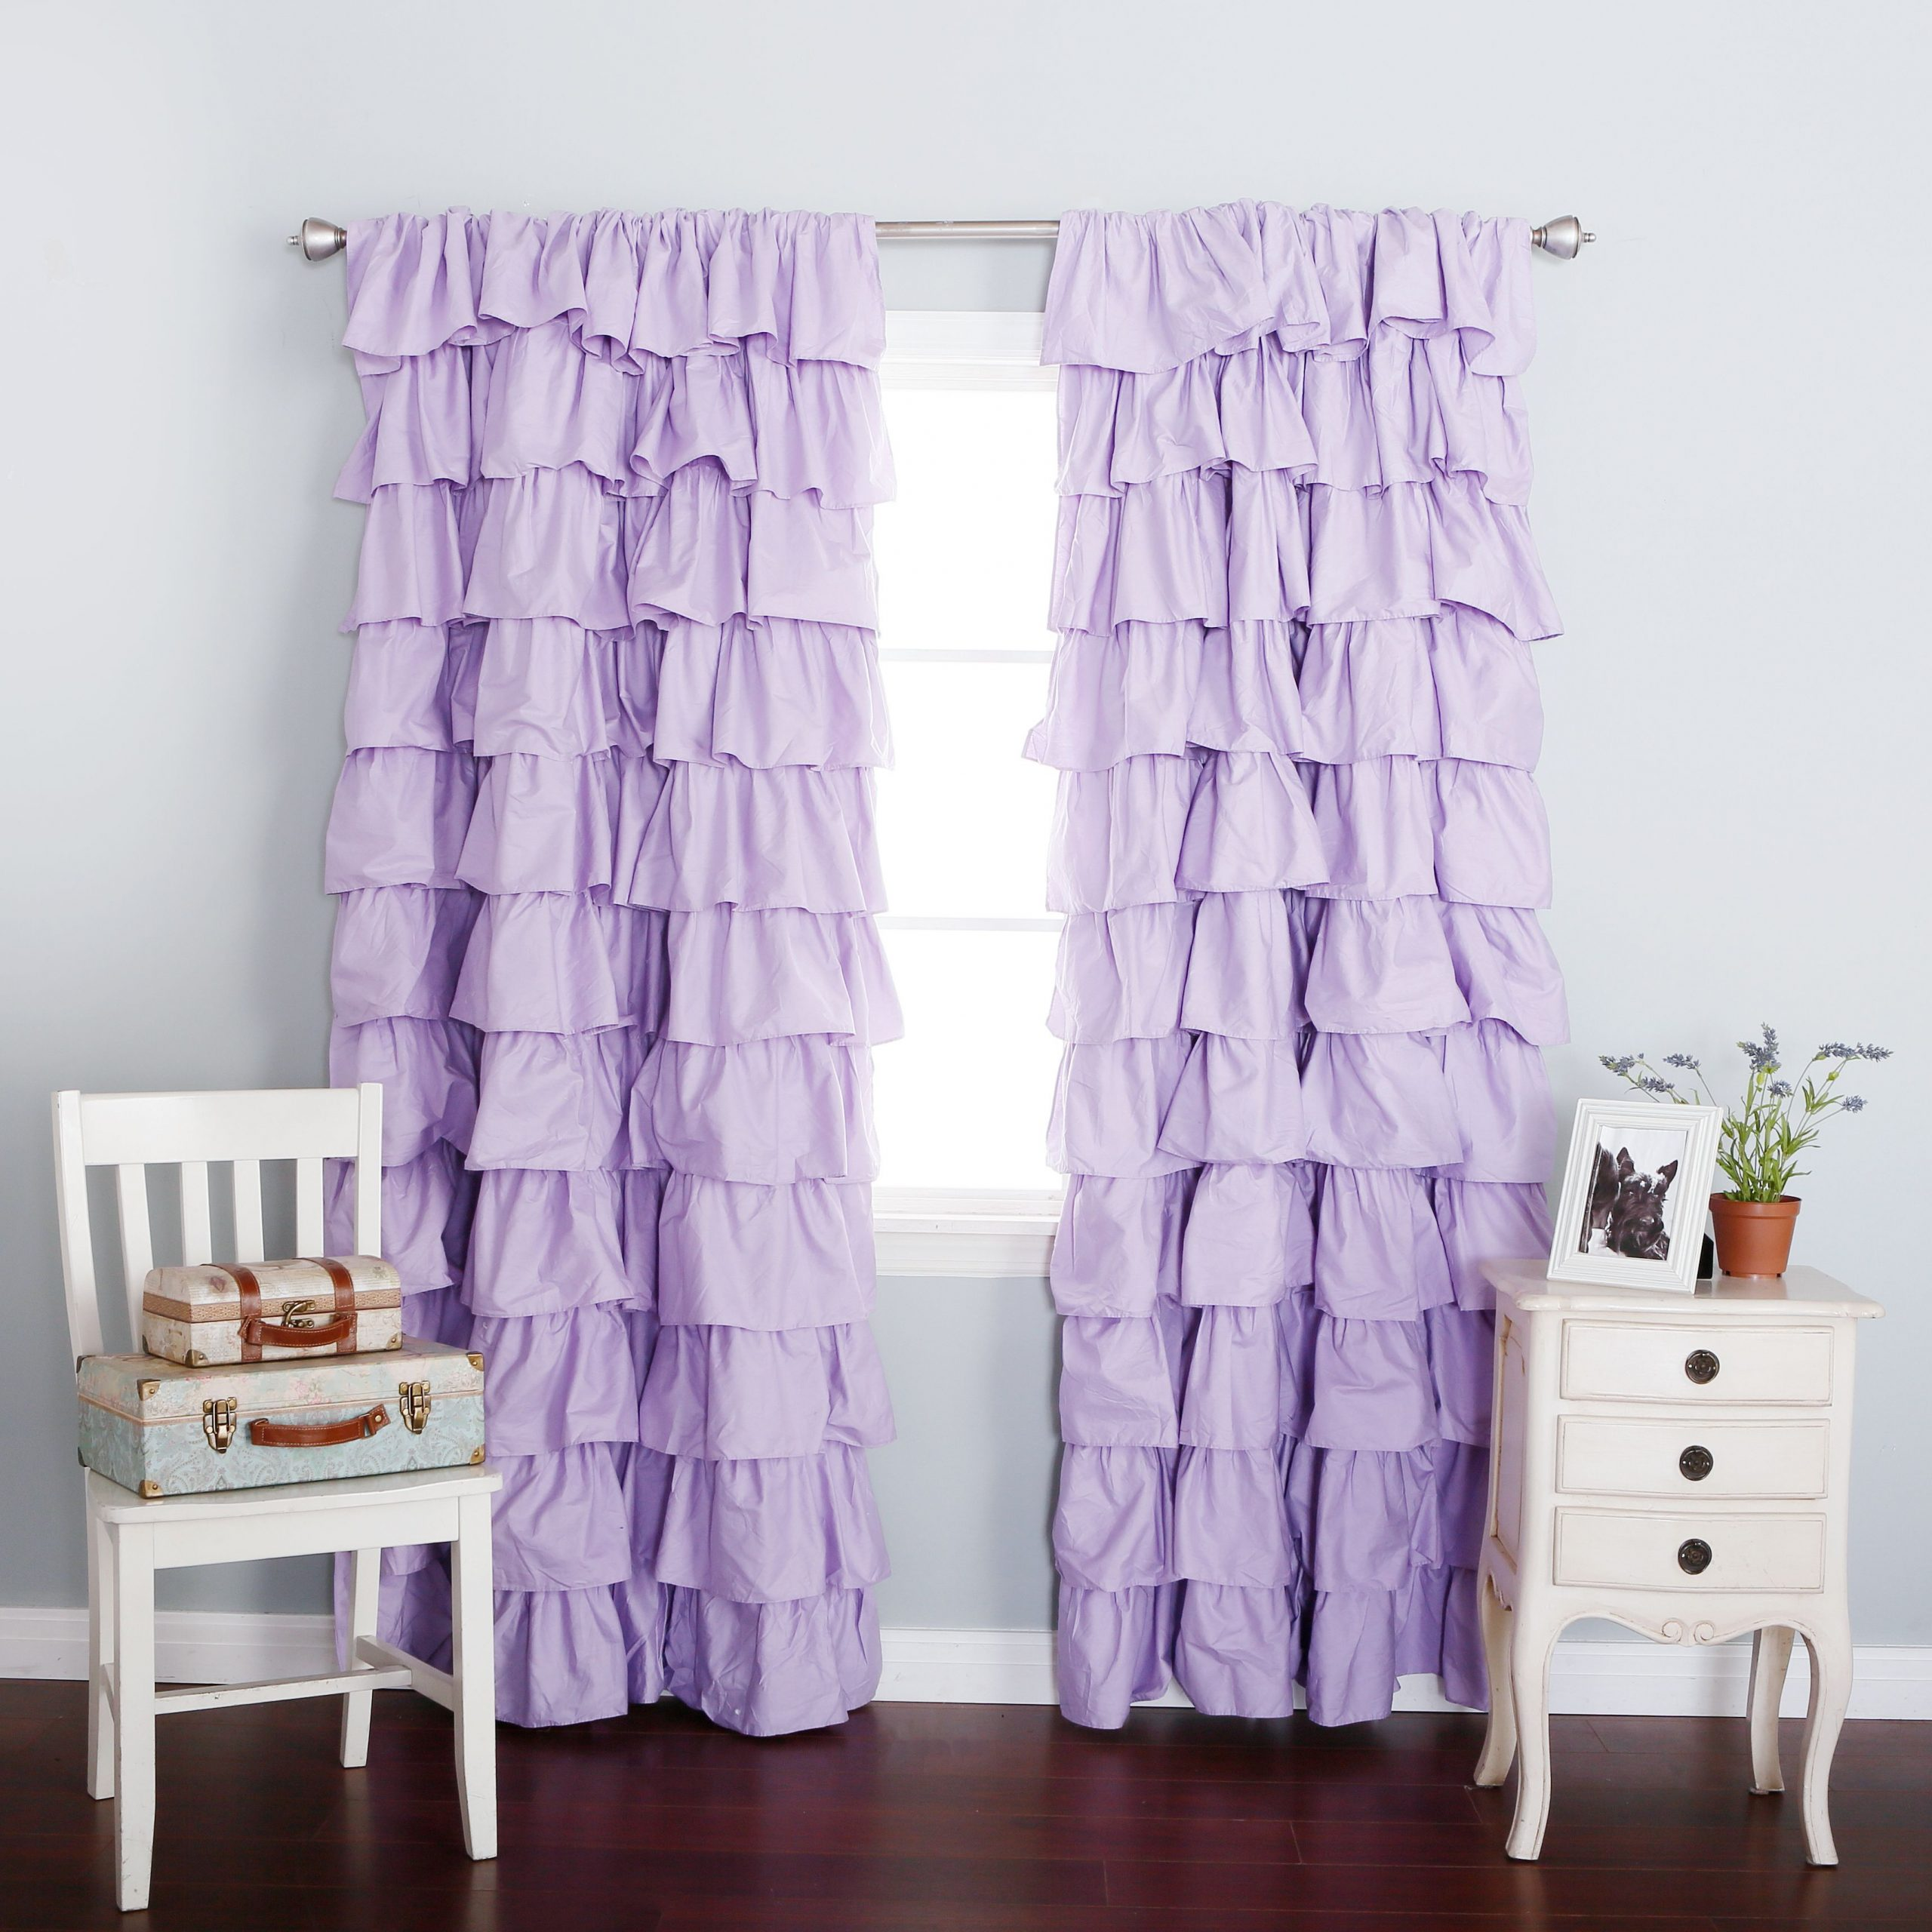 Sheer Voile Waterfall Ruffled Tier Single Curtain Panels Regarding Current Lilac Blackout Large Waterfall Ruffle Curtain Soft And (View 13 of 20)